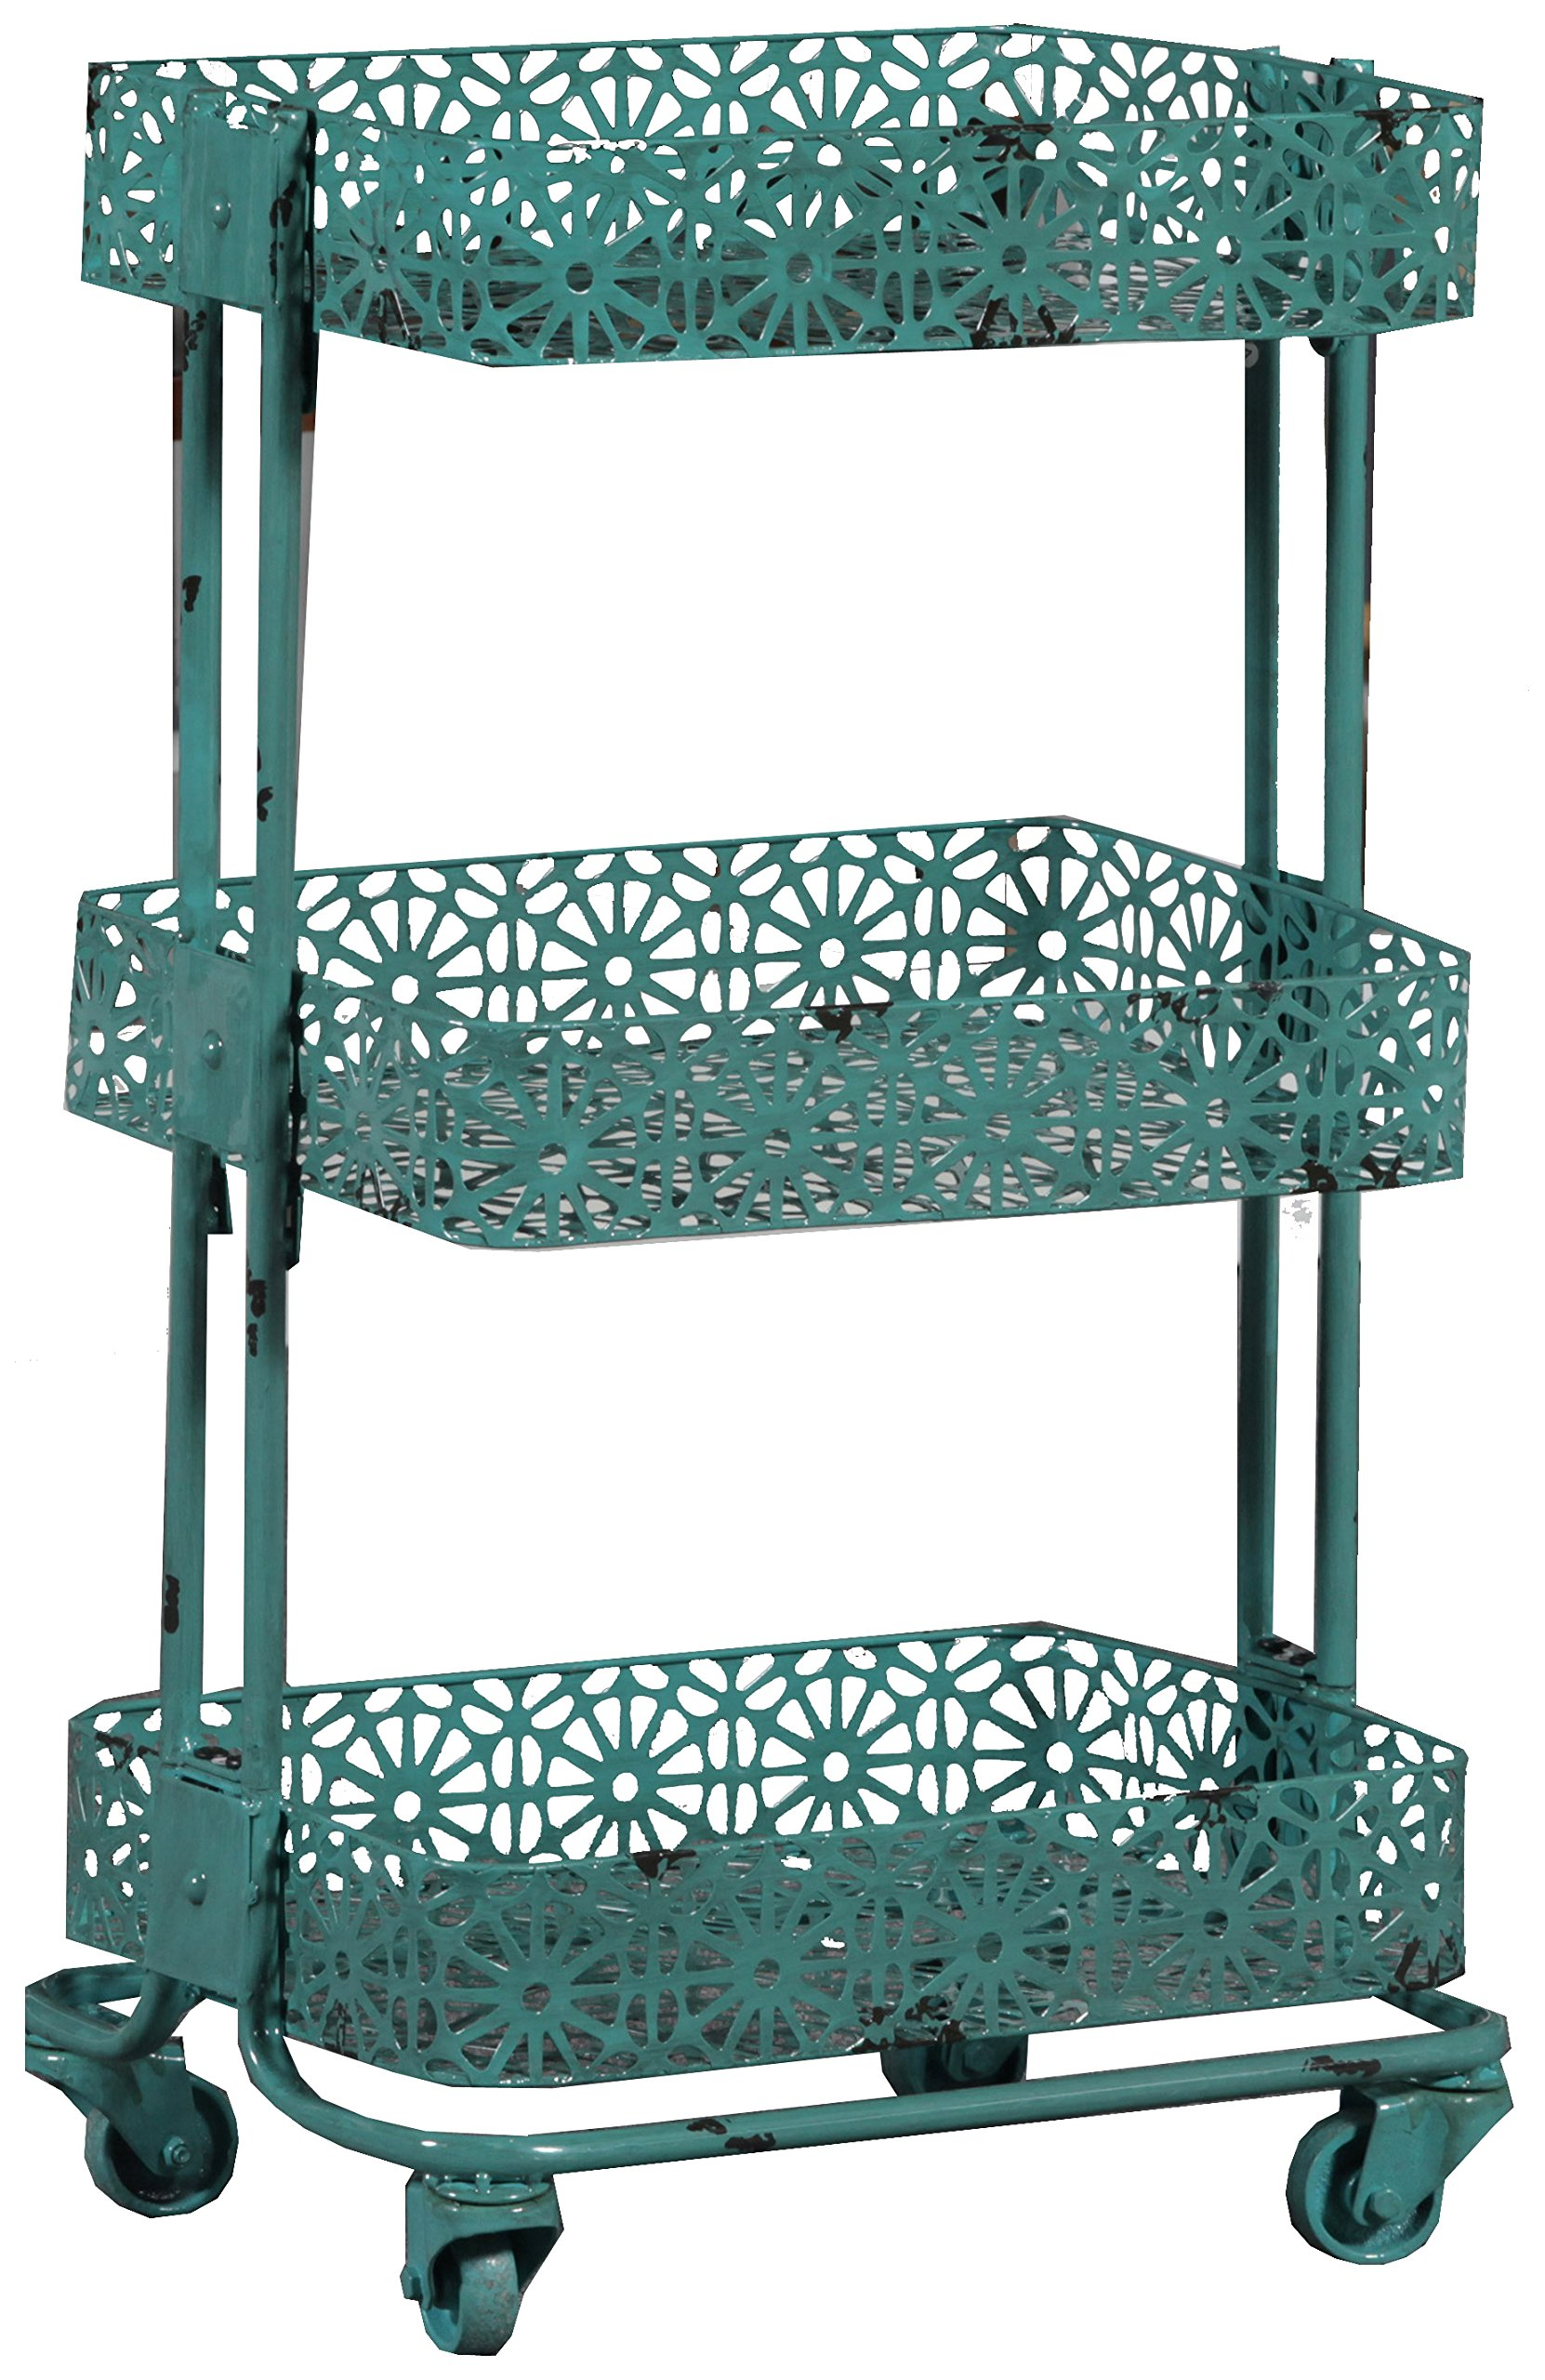 Linon 3-Tier Cart Metal, Turquoise by Linon